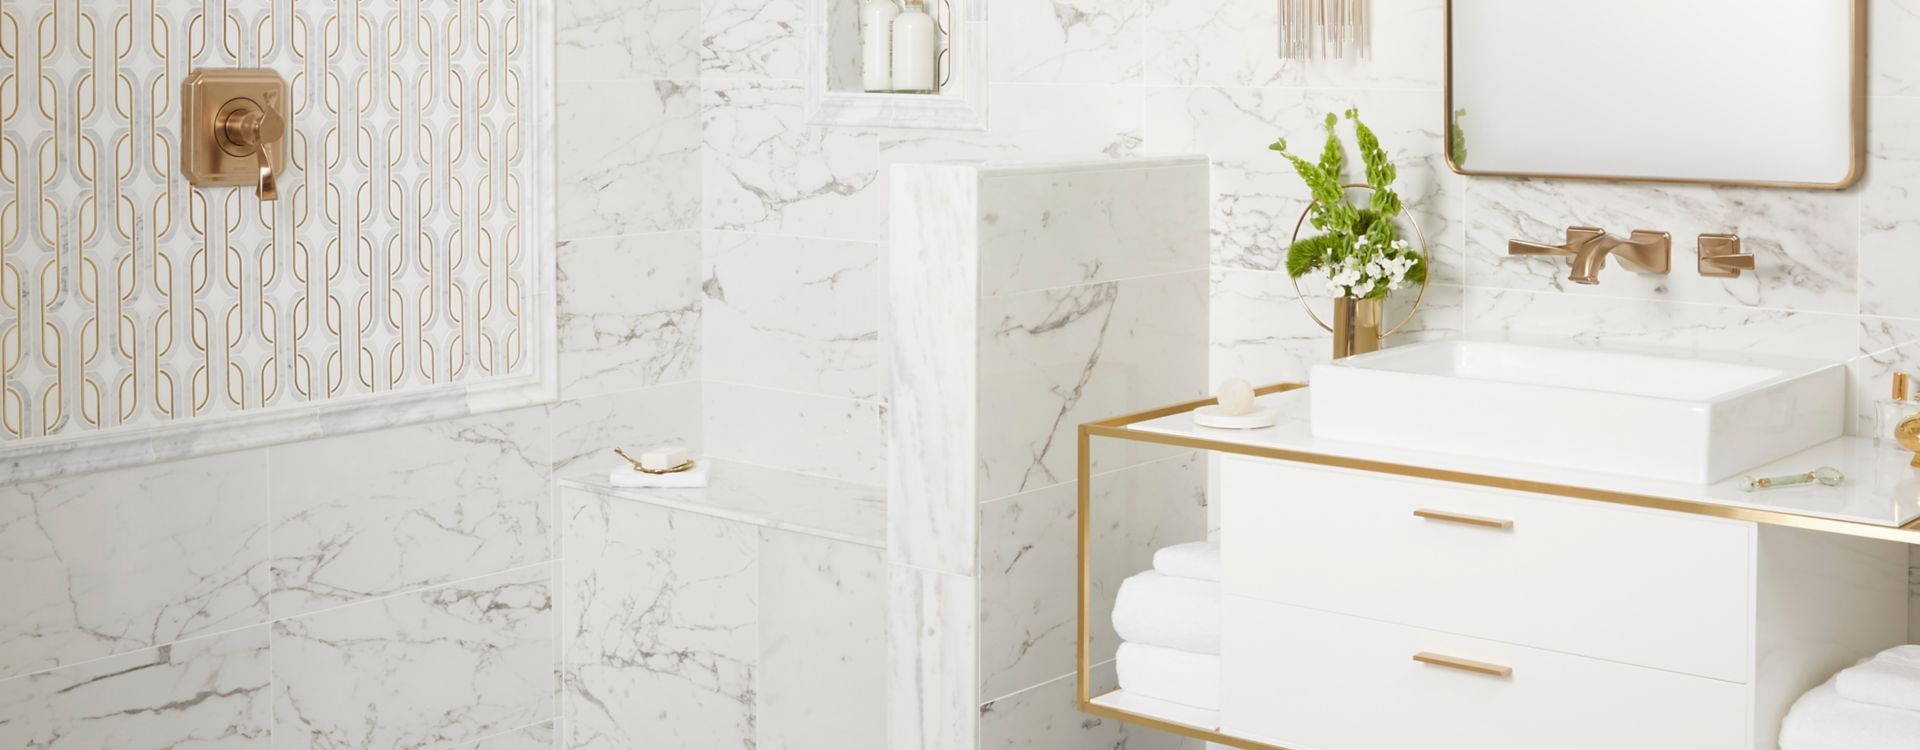 Glamorous bathroom with white marble and gold accents.